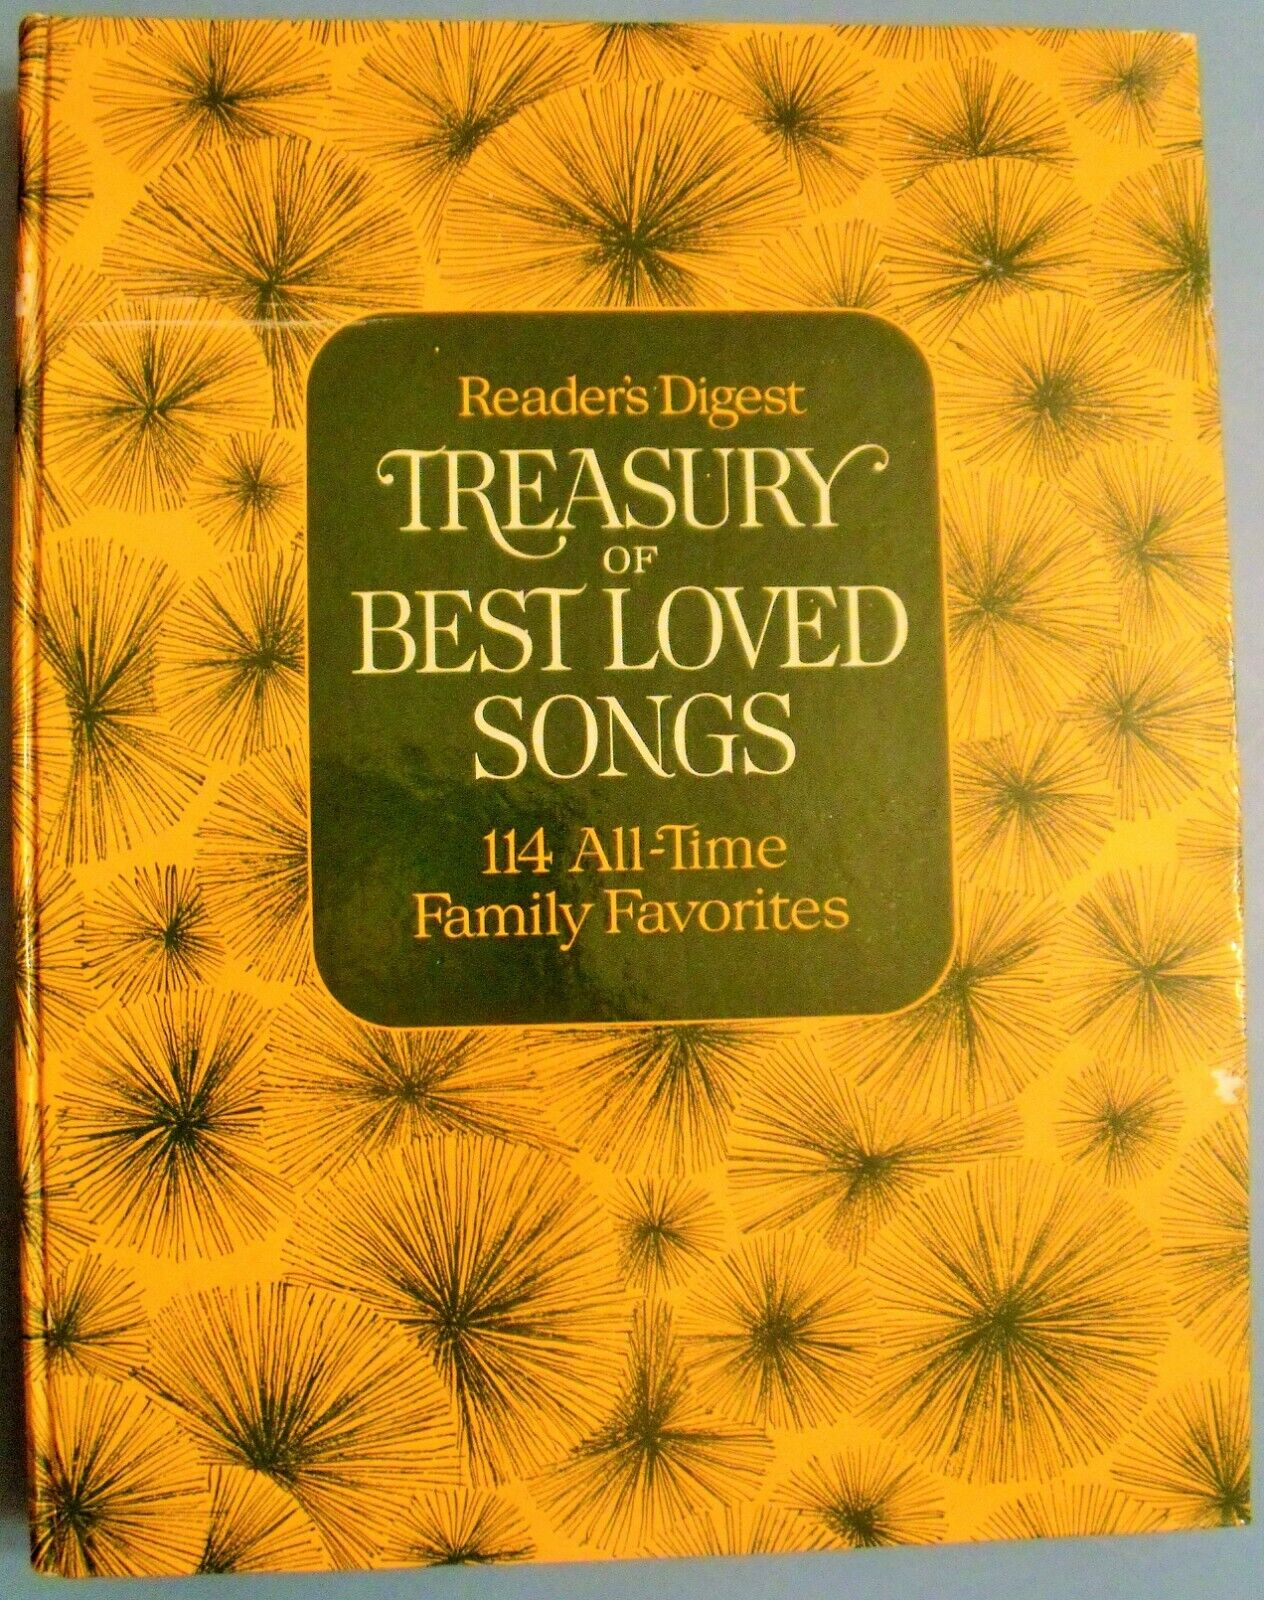 Treasury Of Best Loved Songs Book 114 All-Time Family Favorites Reader s Digest - $8.49